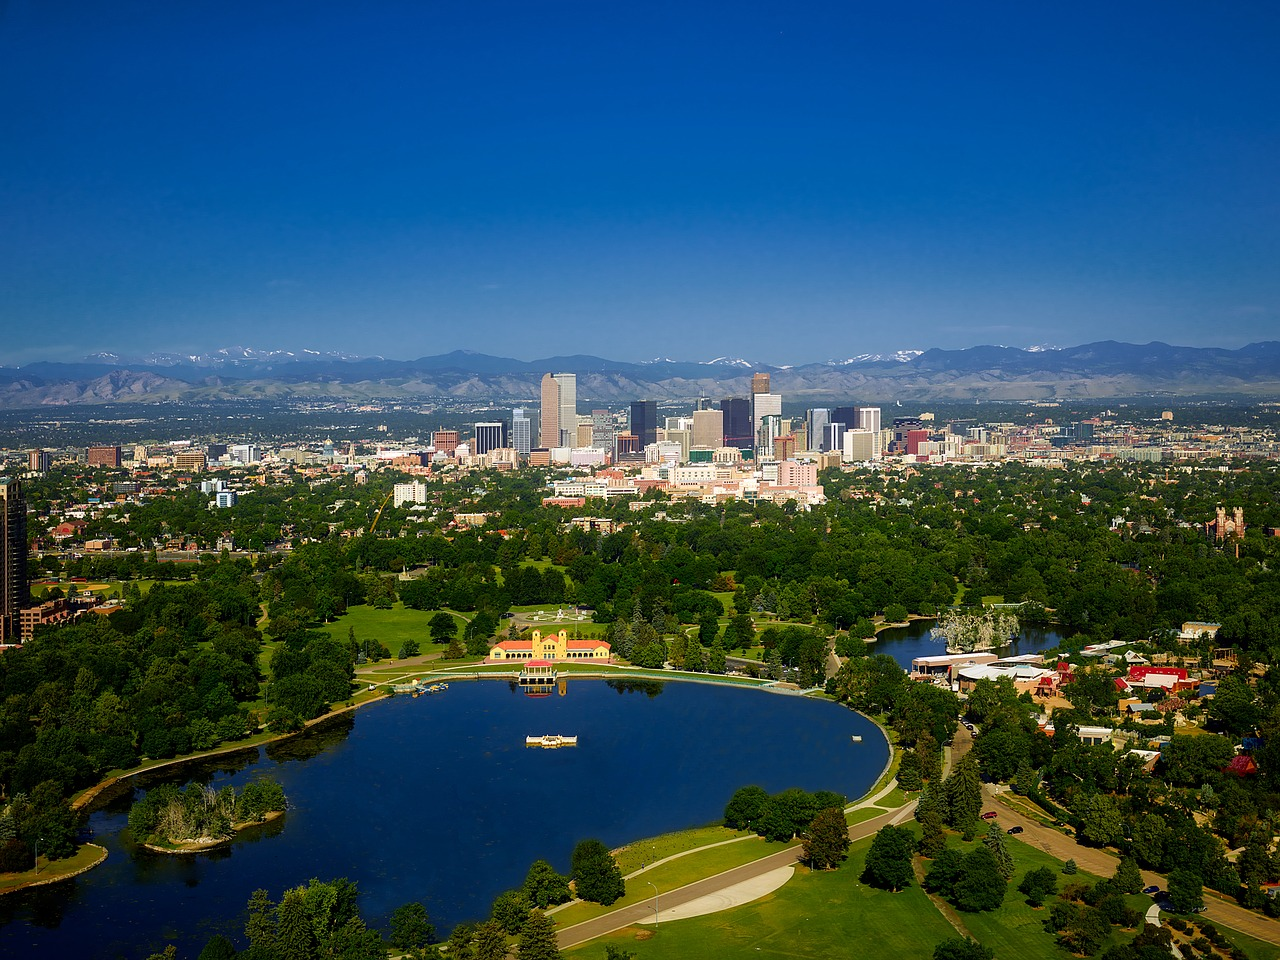 File bankruptcy in Colorado, File for bankruptcy in Colorado, How to file for bankruptcy in Colorado